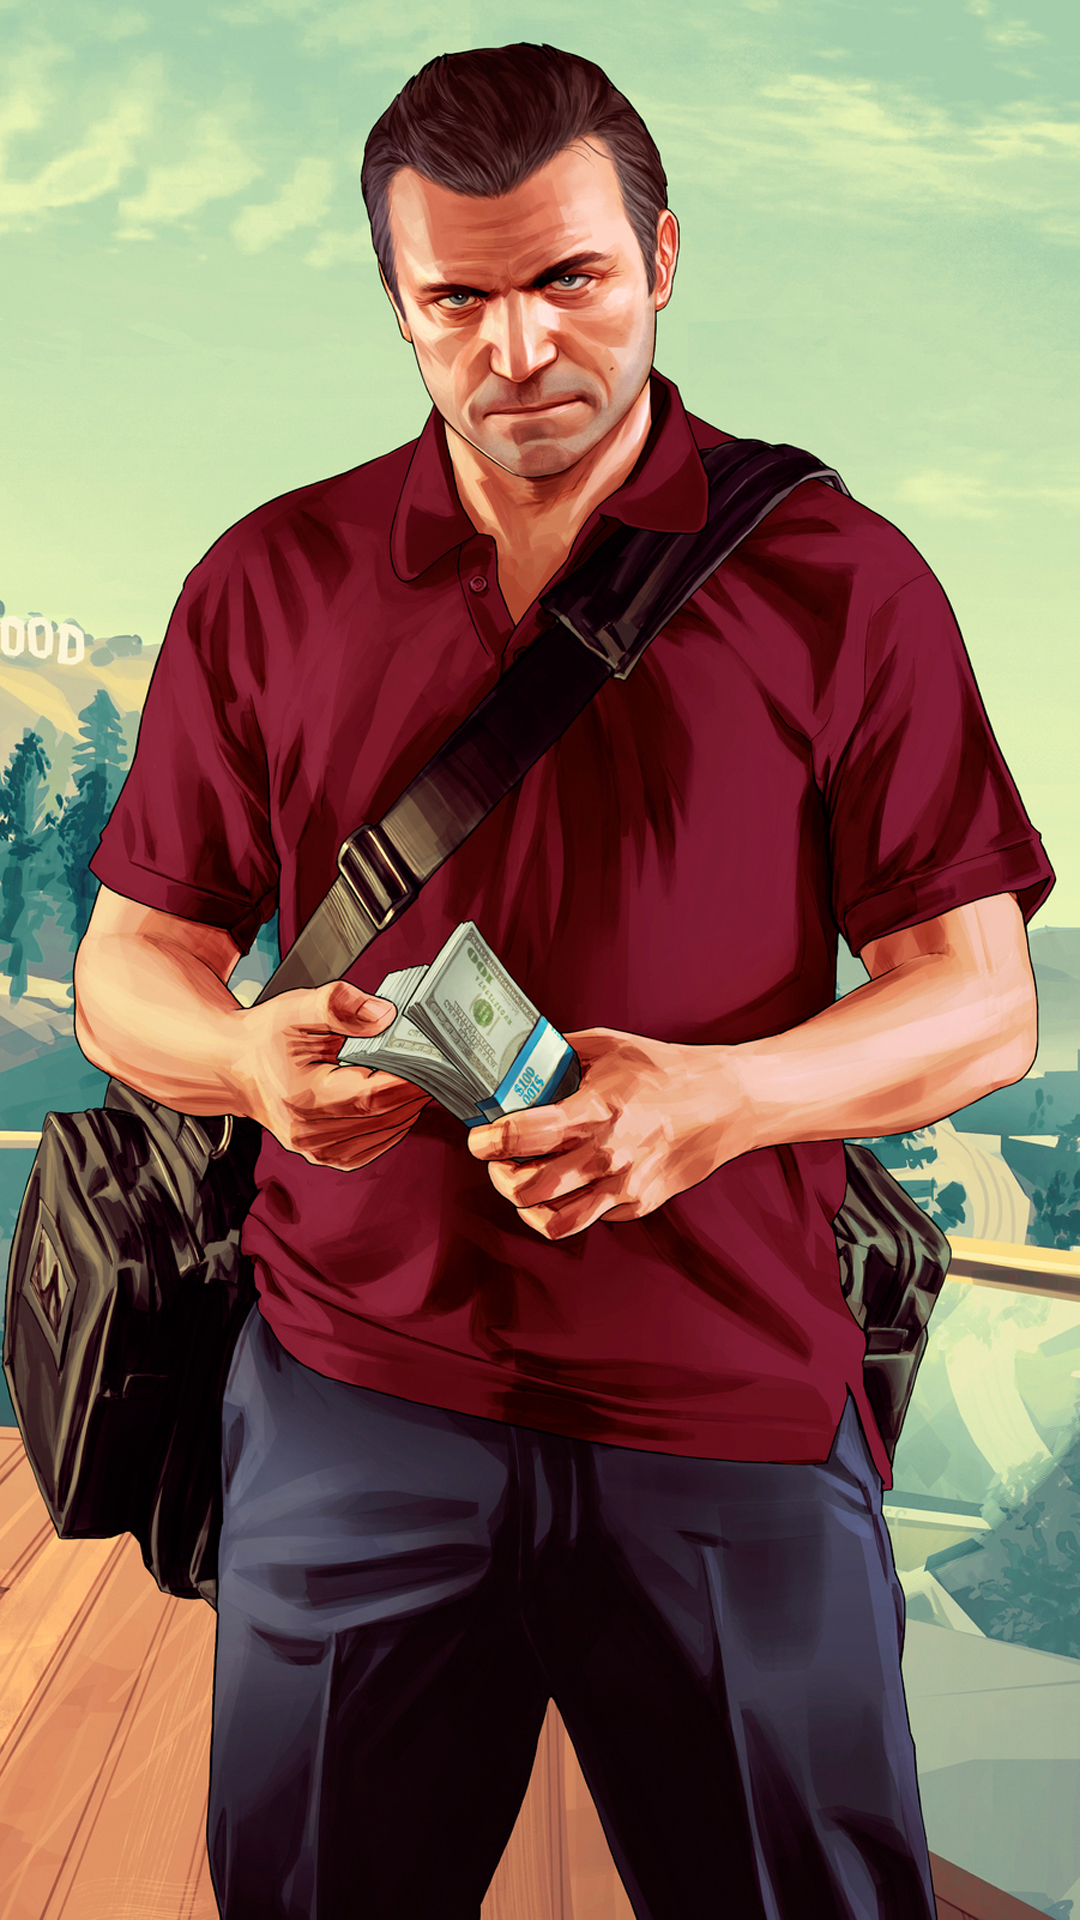 Grand theft auto htc one wallpaper